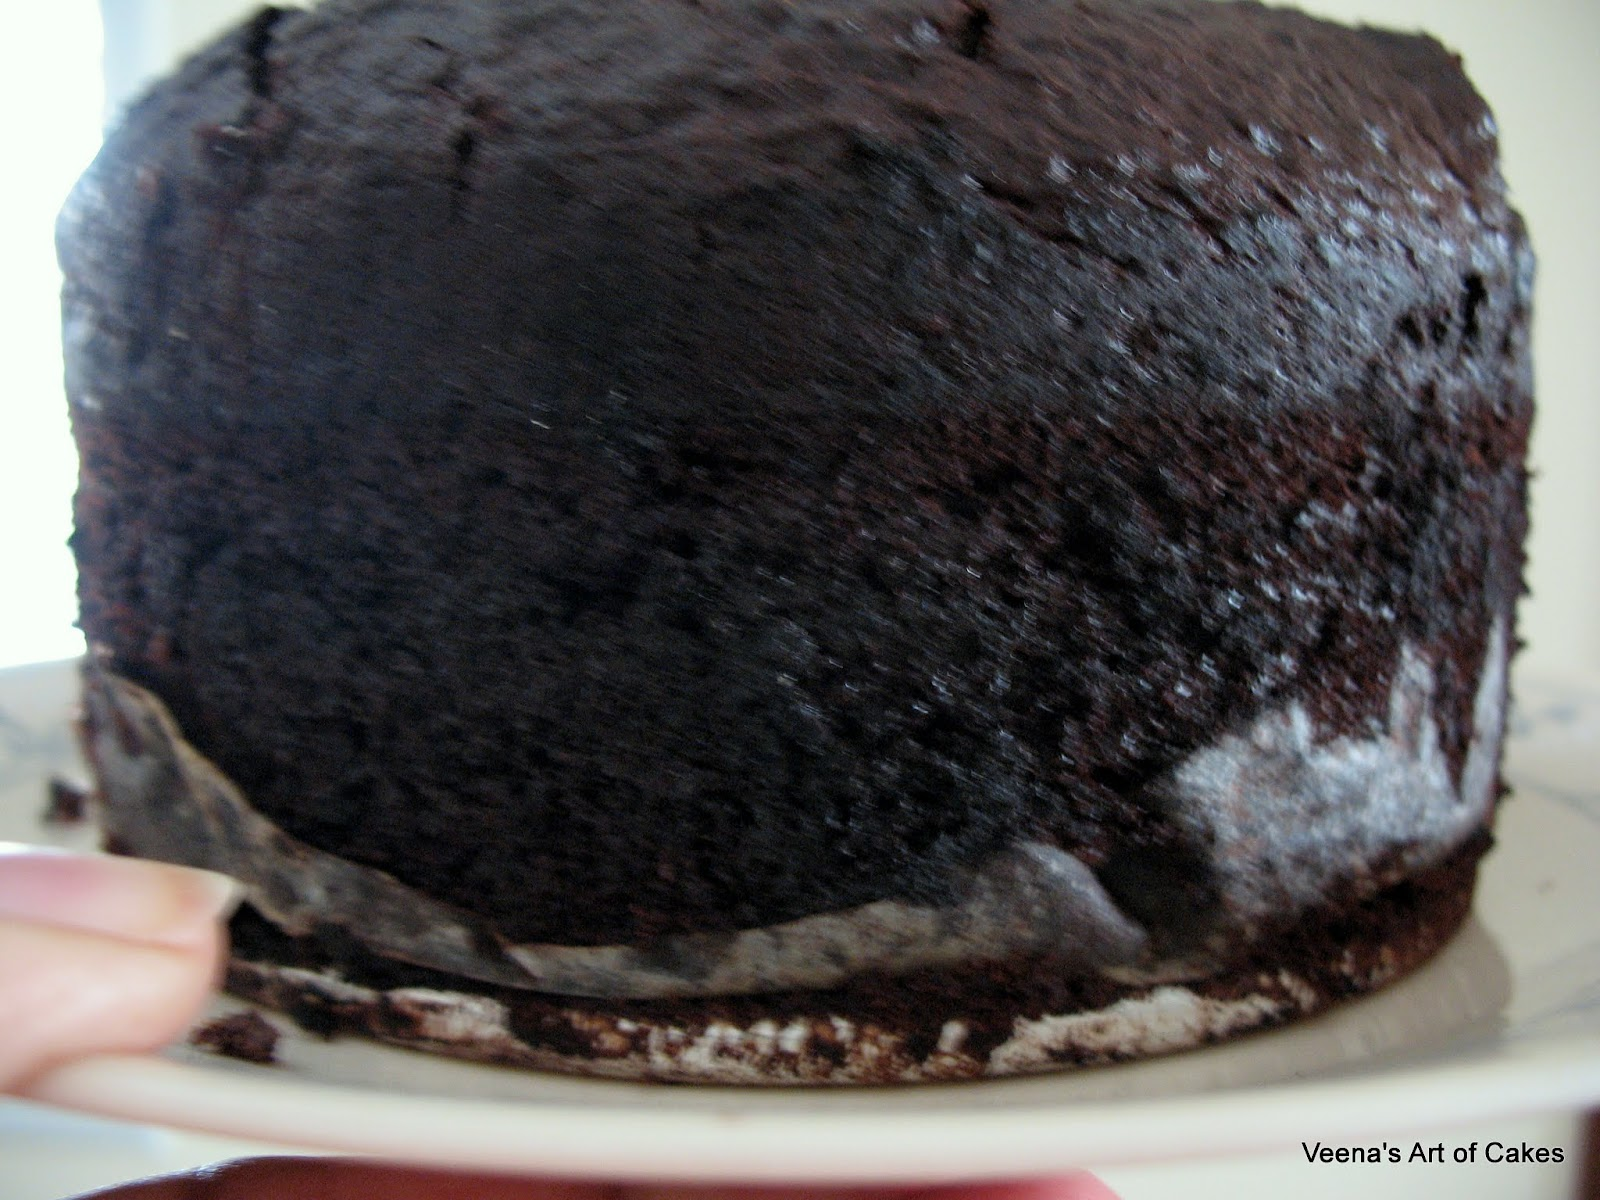 Simple yet moist chocolate cake - Veena's Art of Cakes